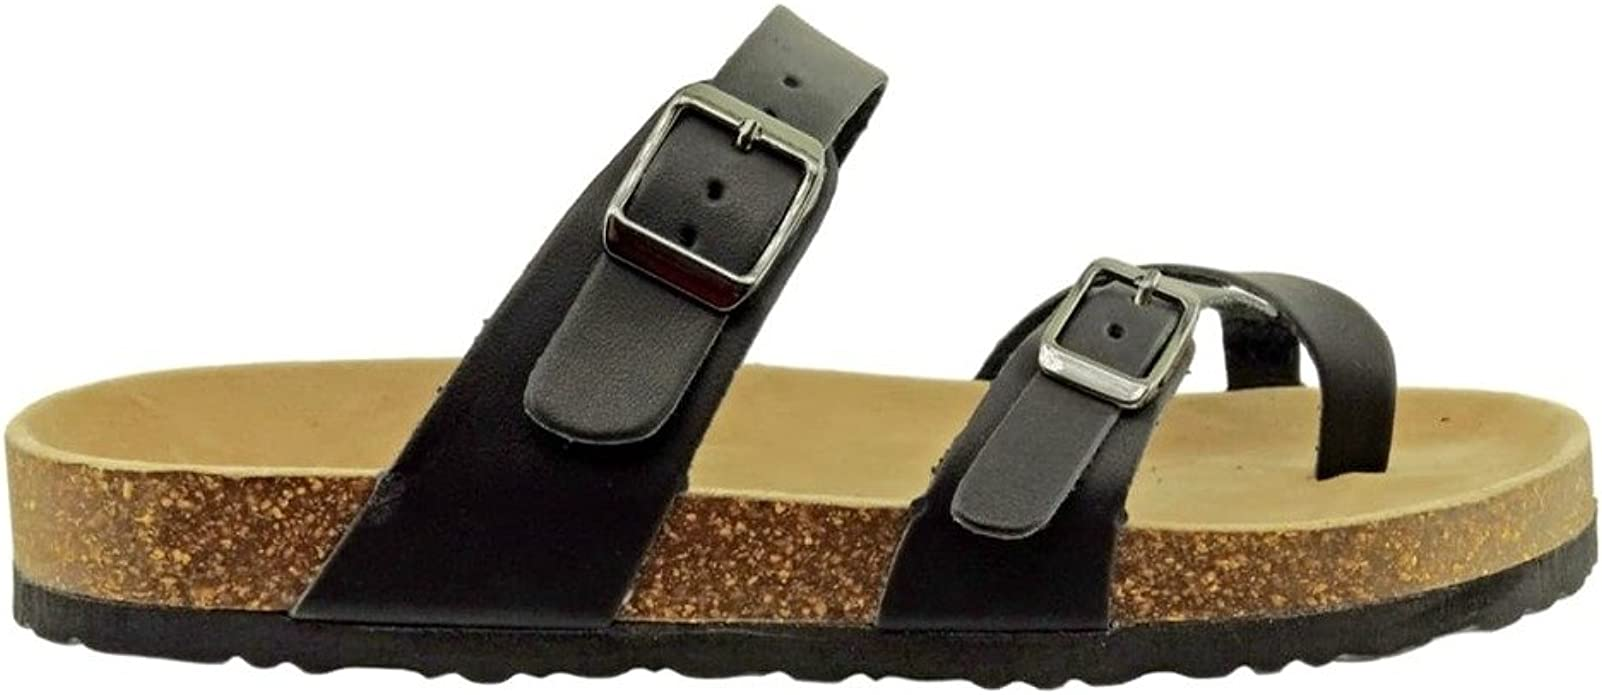 Outwoods Women/'s Black Synthetic Leather Double Buckle Toe Loop Sandal 21321-101